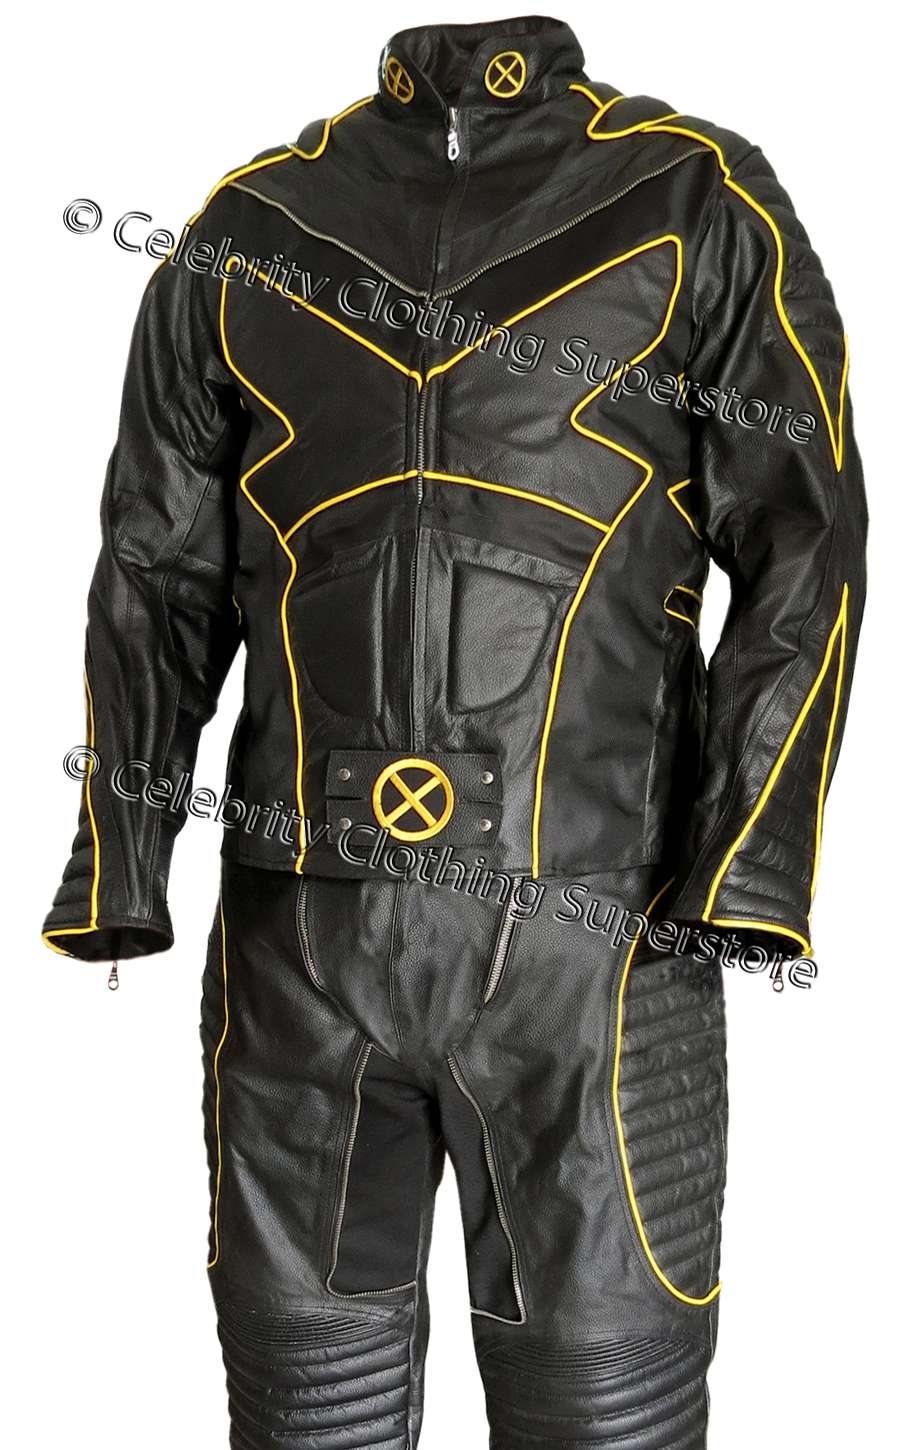 X-Men-2-Wolverine-Motorcycle-Leather-Suit-Outfit-Costume/X-Men-X2-Wolverine-Motorcycle-Leather-Suit.jpg